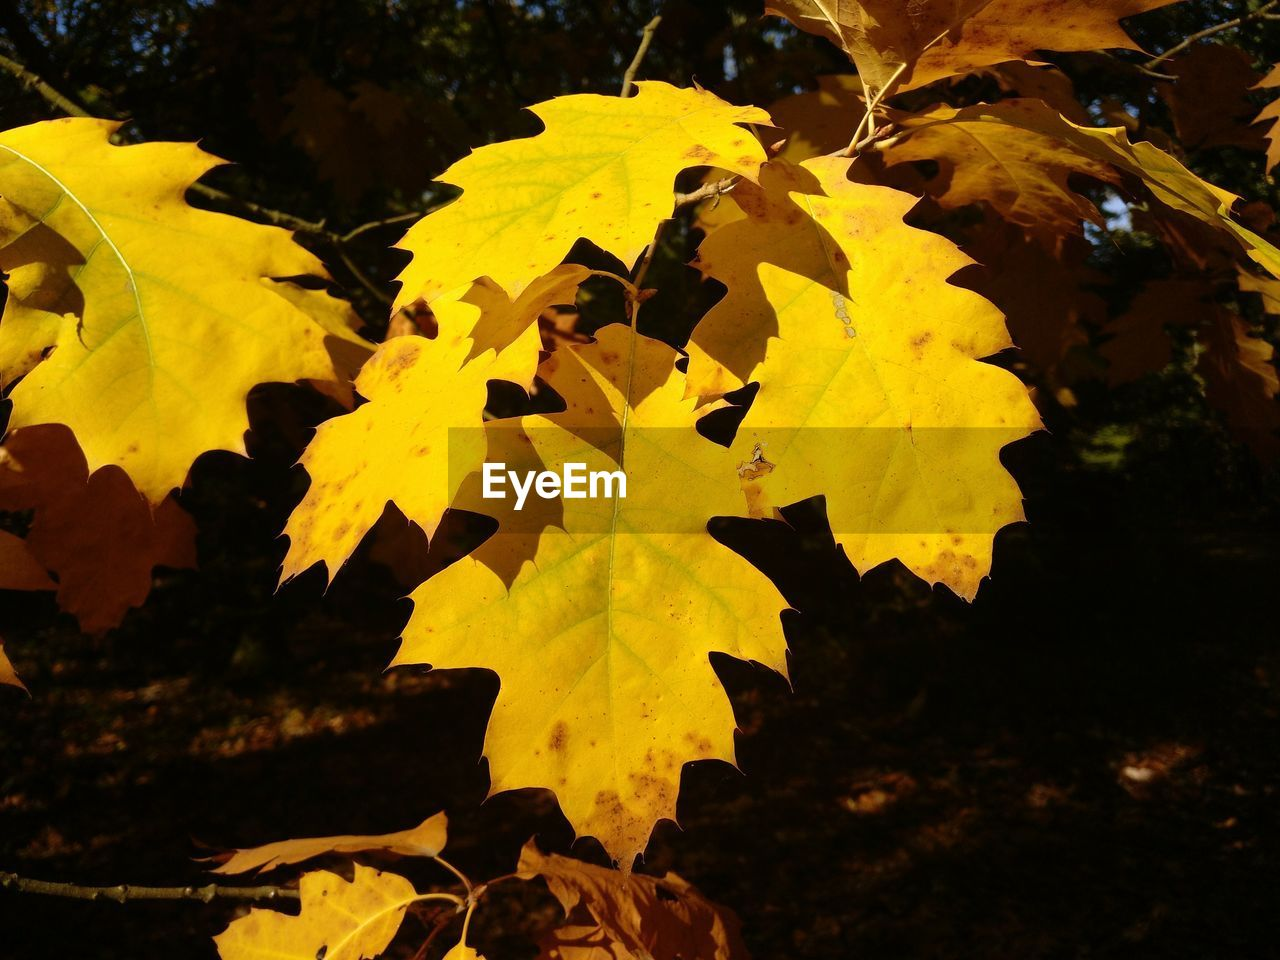 yellow, plant part, leaf, autumn, nature, change, tree, no people, close-up, beauty in nature, maple leaf, leaves, plant, outdoors, day, sunlight, growth, focus on foreground, sky, branch, natural condition, autumn collection